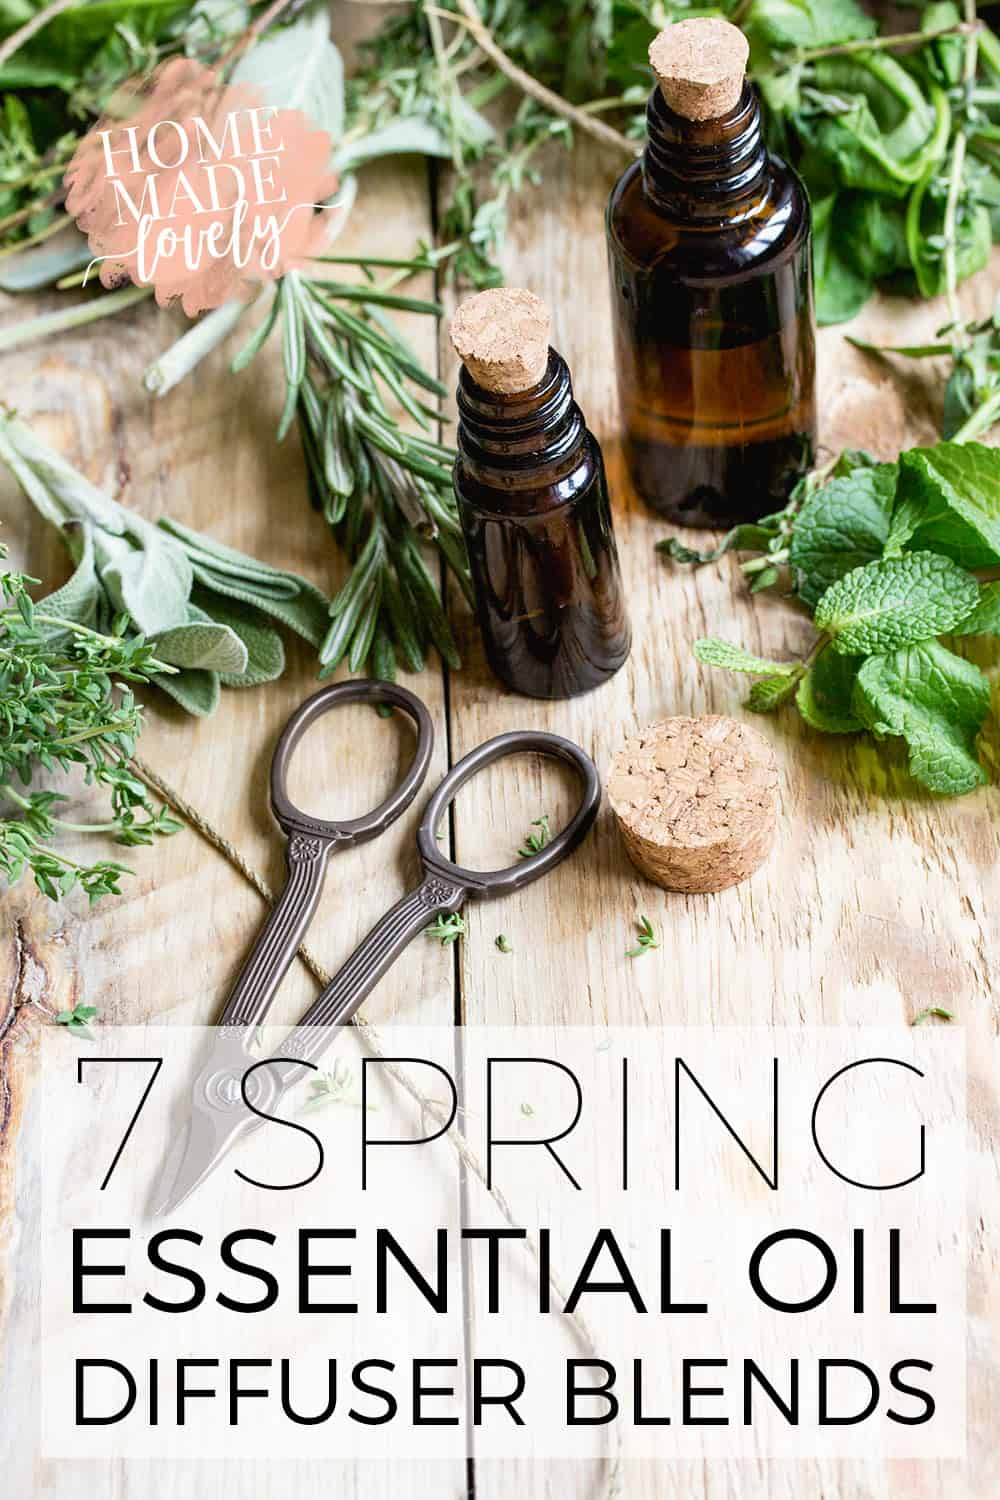 If you're ready to start spring cleaning now, want to rid yourself of the winter blues or are simply ready for spring renewal these spring essential oil diffuser blends are a great way to bring the sweetness of springtime indoors.